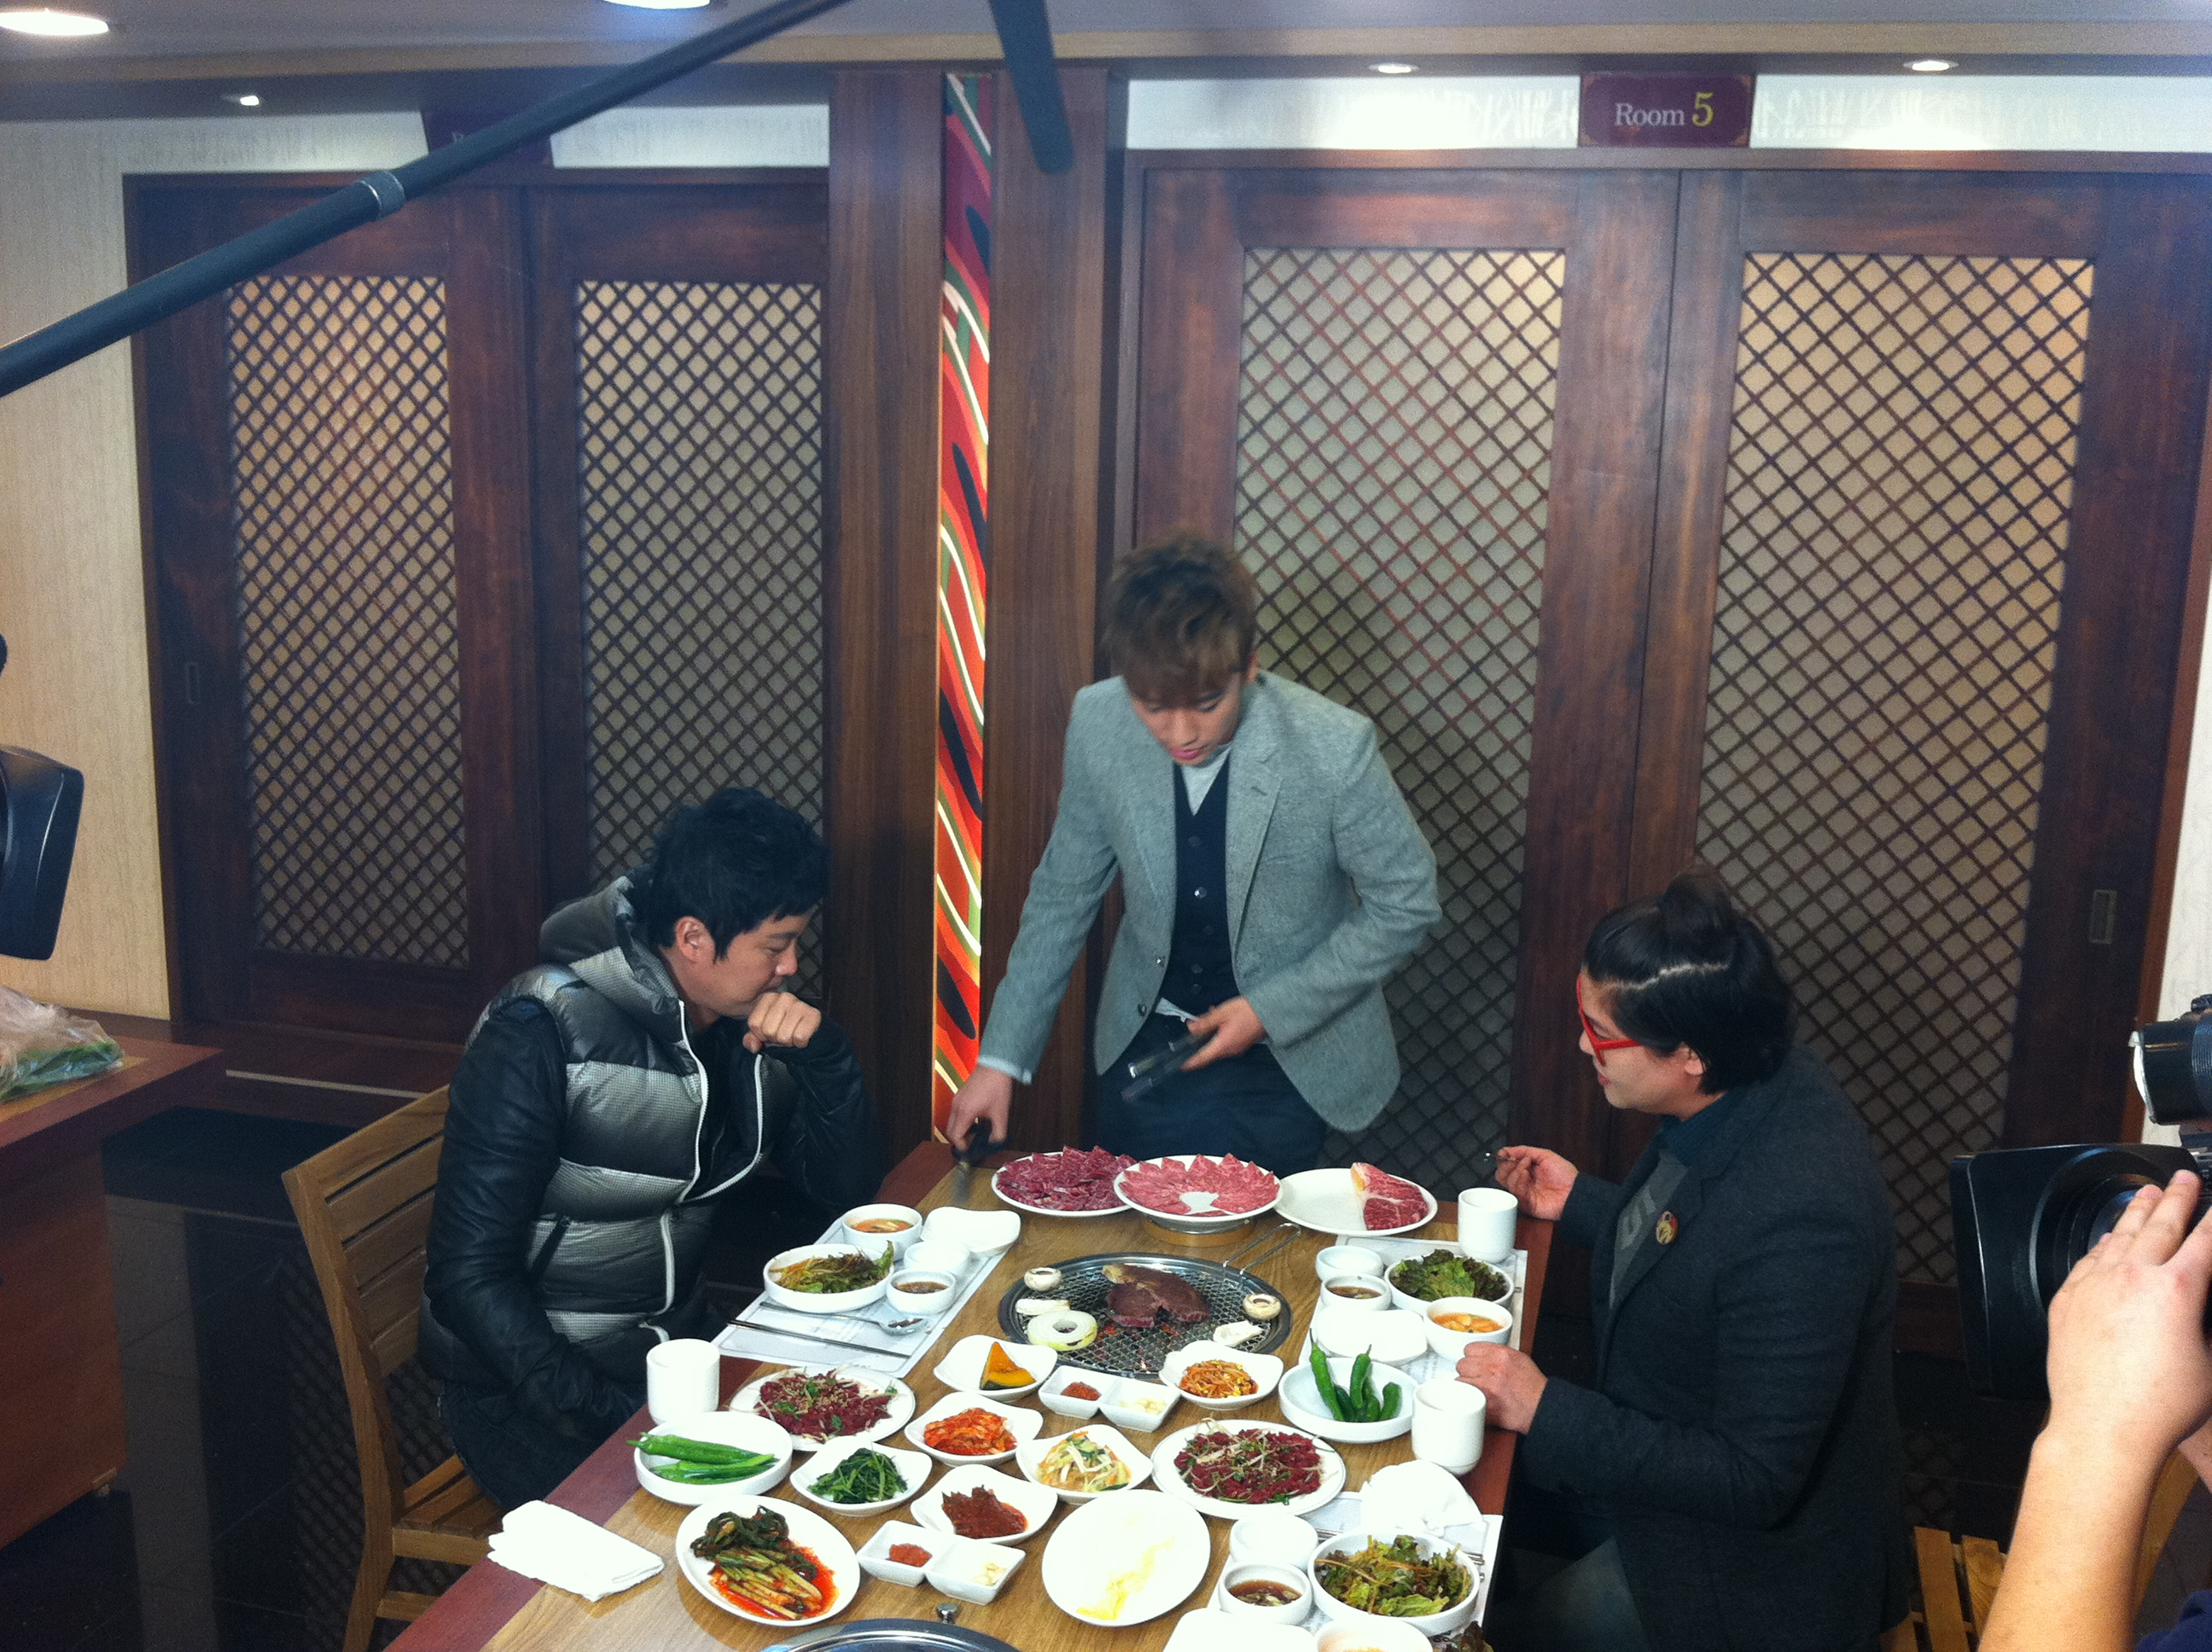 Seung Ri - tvN Taxi - Yeongcheon Younghwa Restaurant - 06feb2011 - 03.jpg